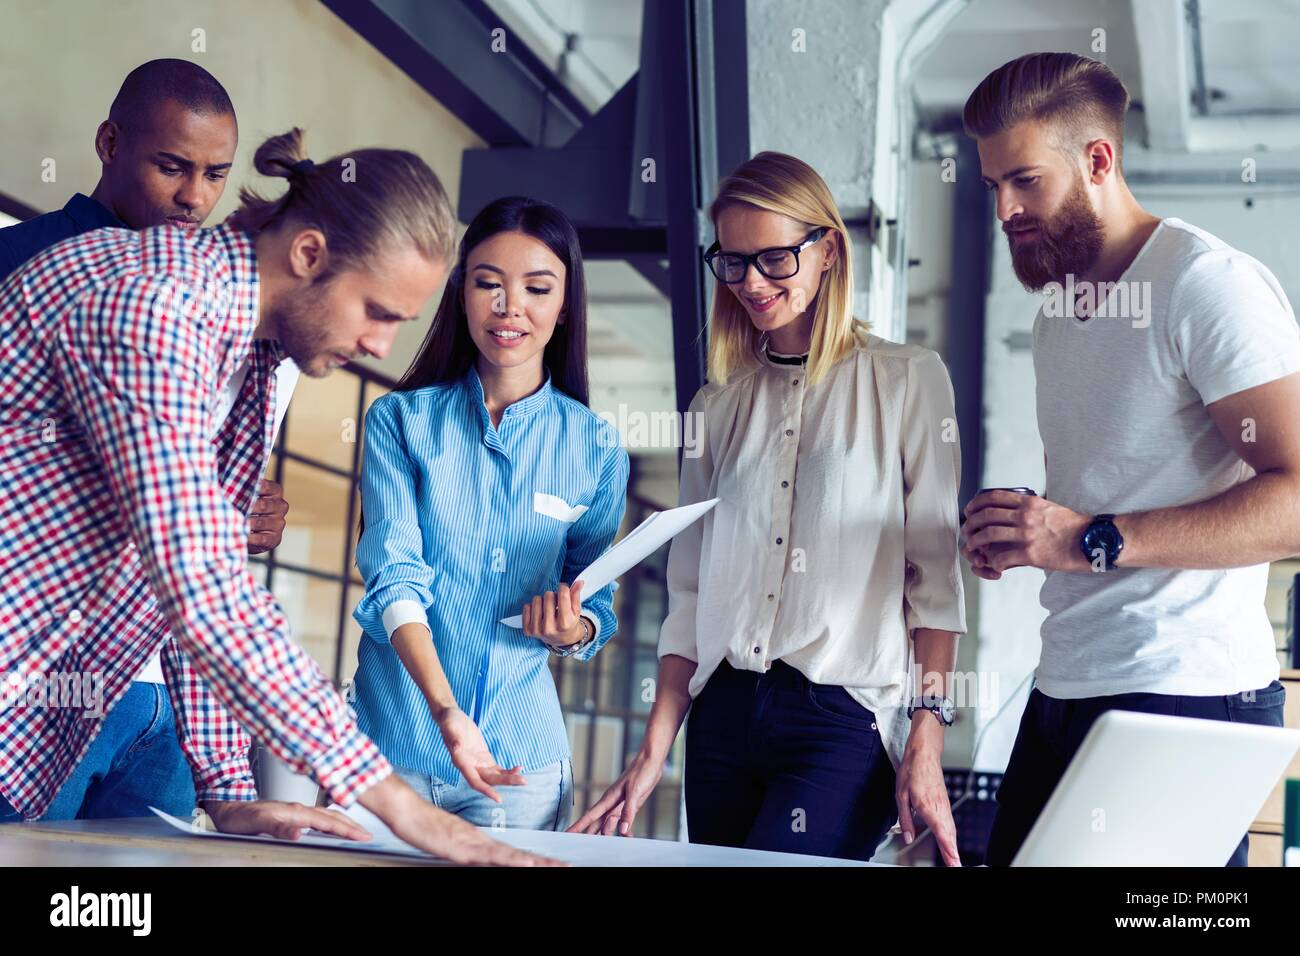 Successful team. Group of young business people working and communicating together in creative office. - Stock Image